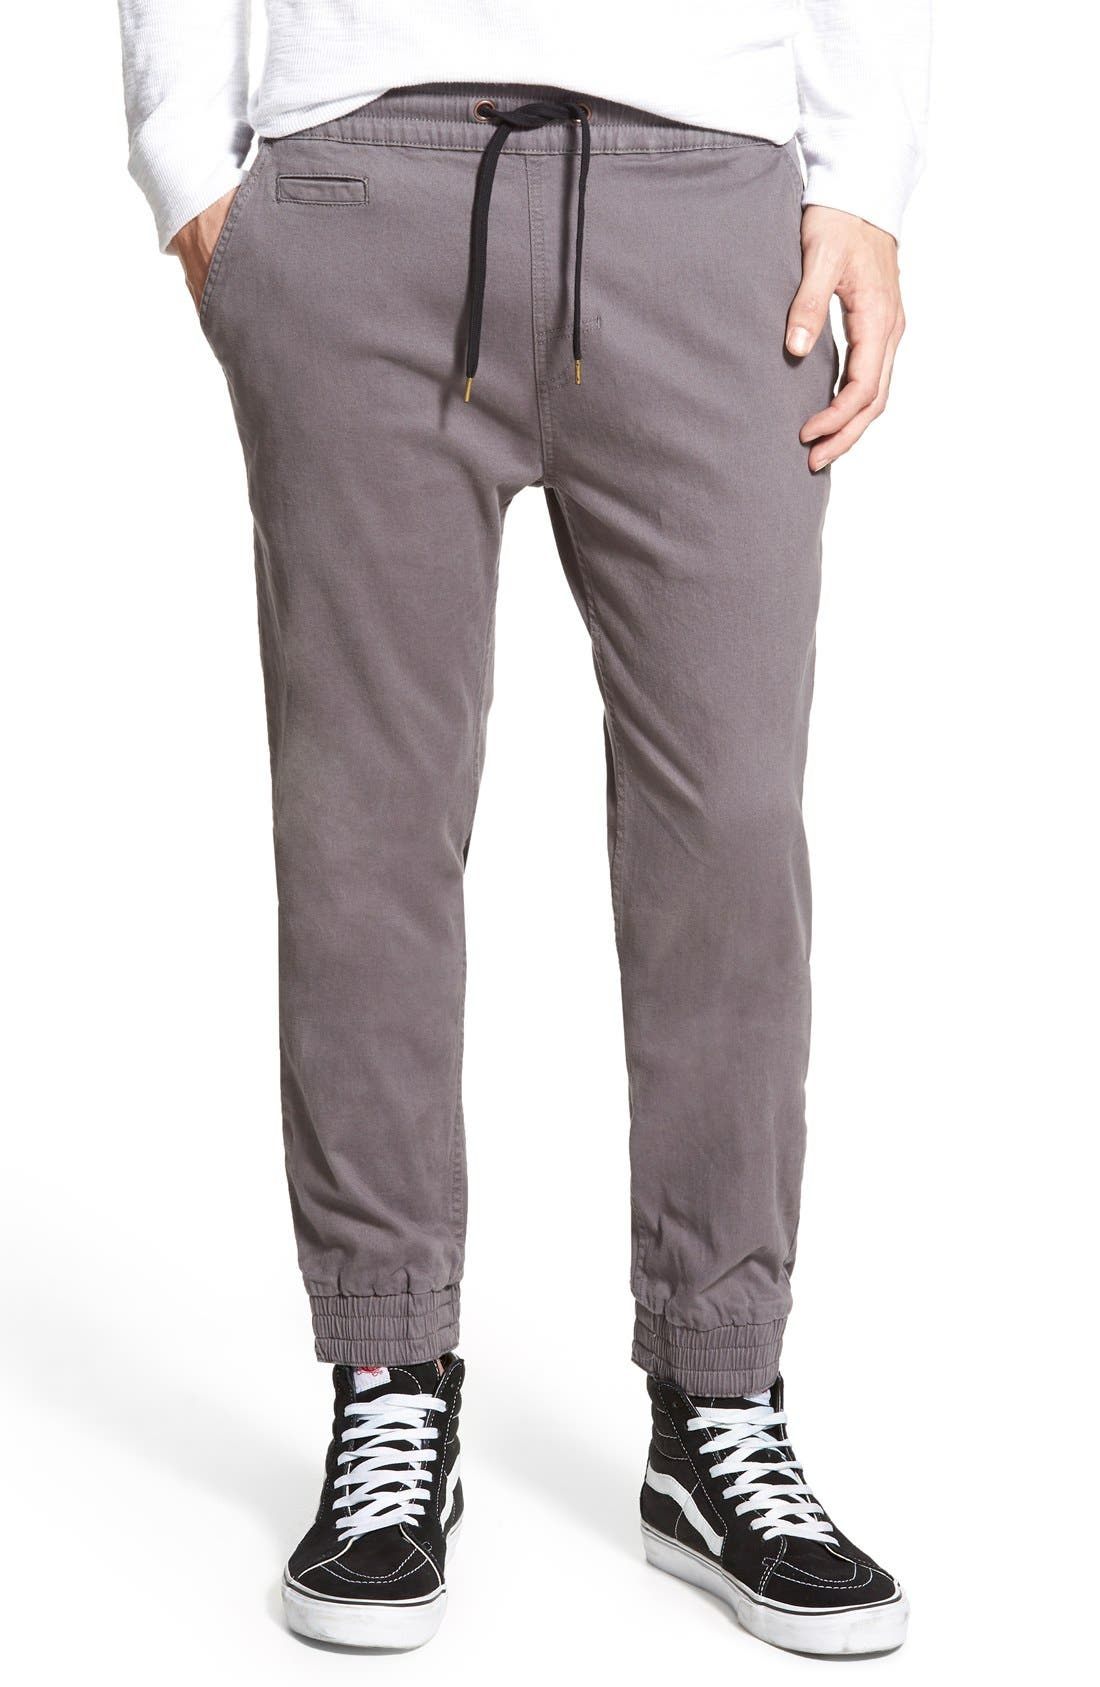 'Denny' Woven Jogger Pants,                         Main,                         color, Charcoal